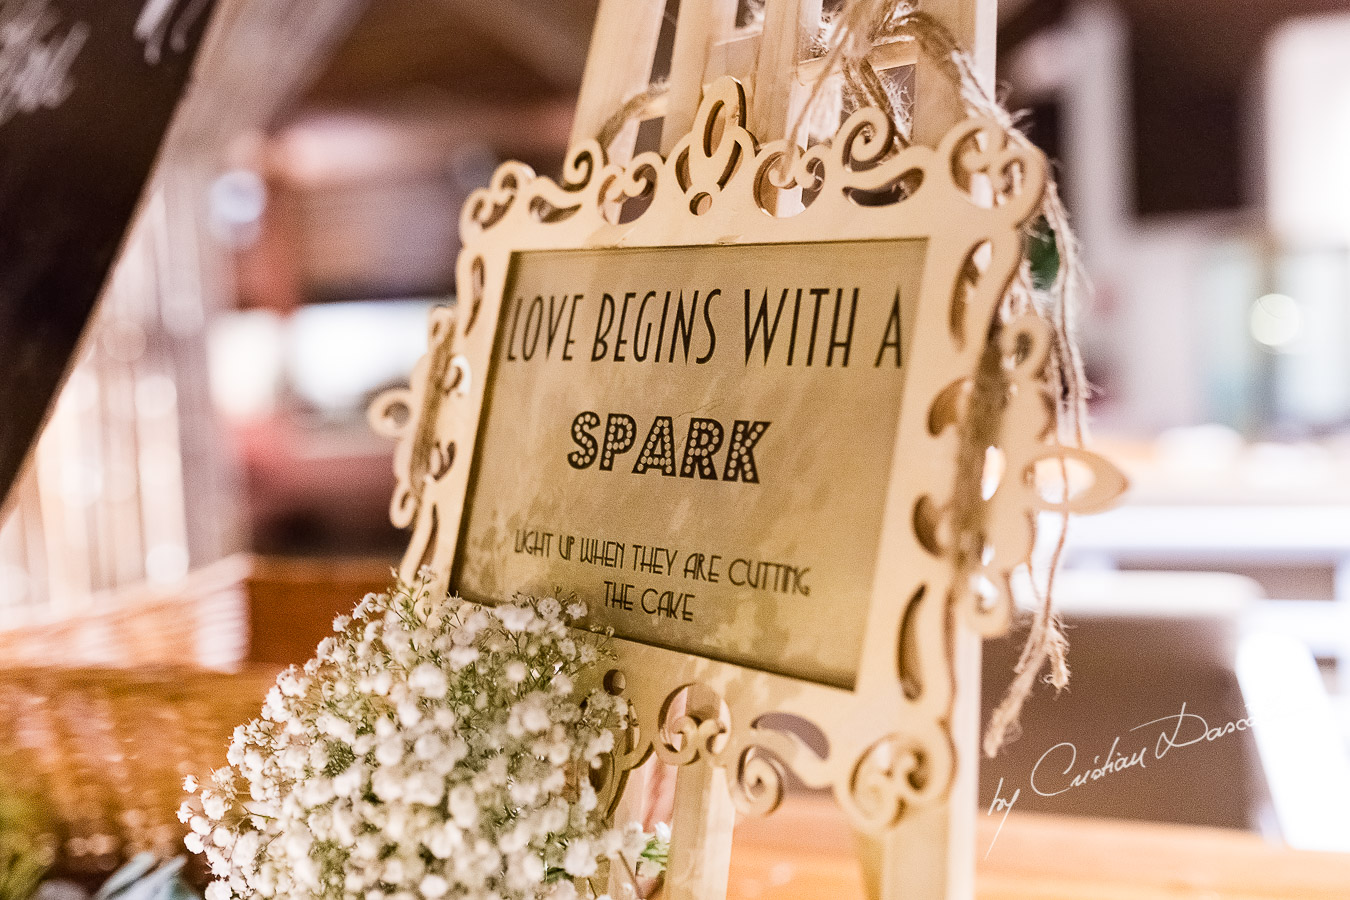 Wedding Decorations and Details photographed as part of an Exclusive Wedding photography at Grand Resort Limassol, captured by Cyprus Wedding Photographer Cristian Dascalu.